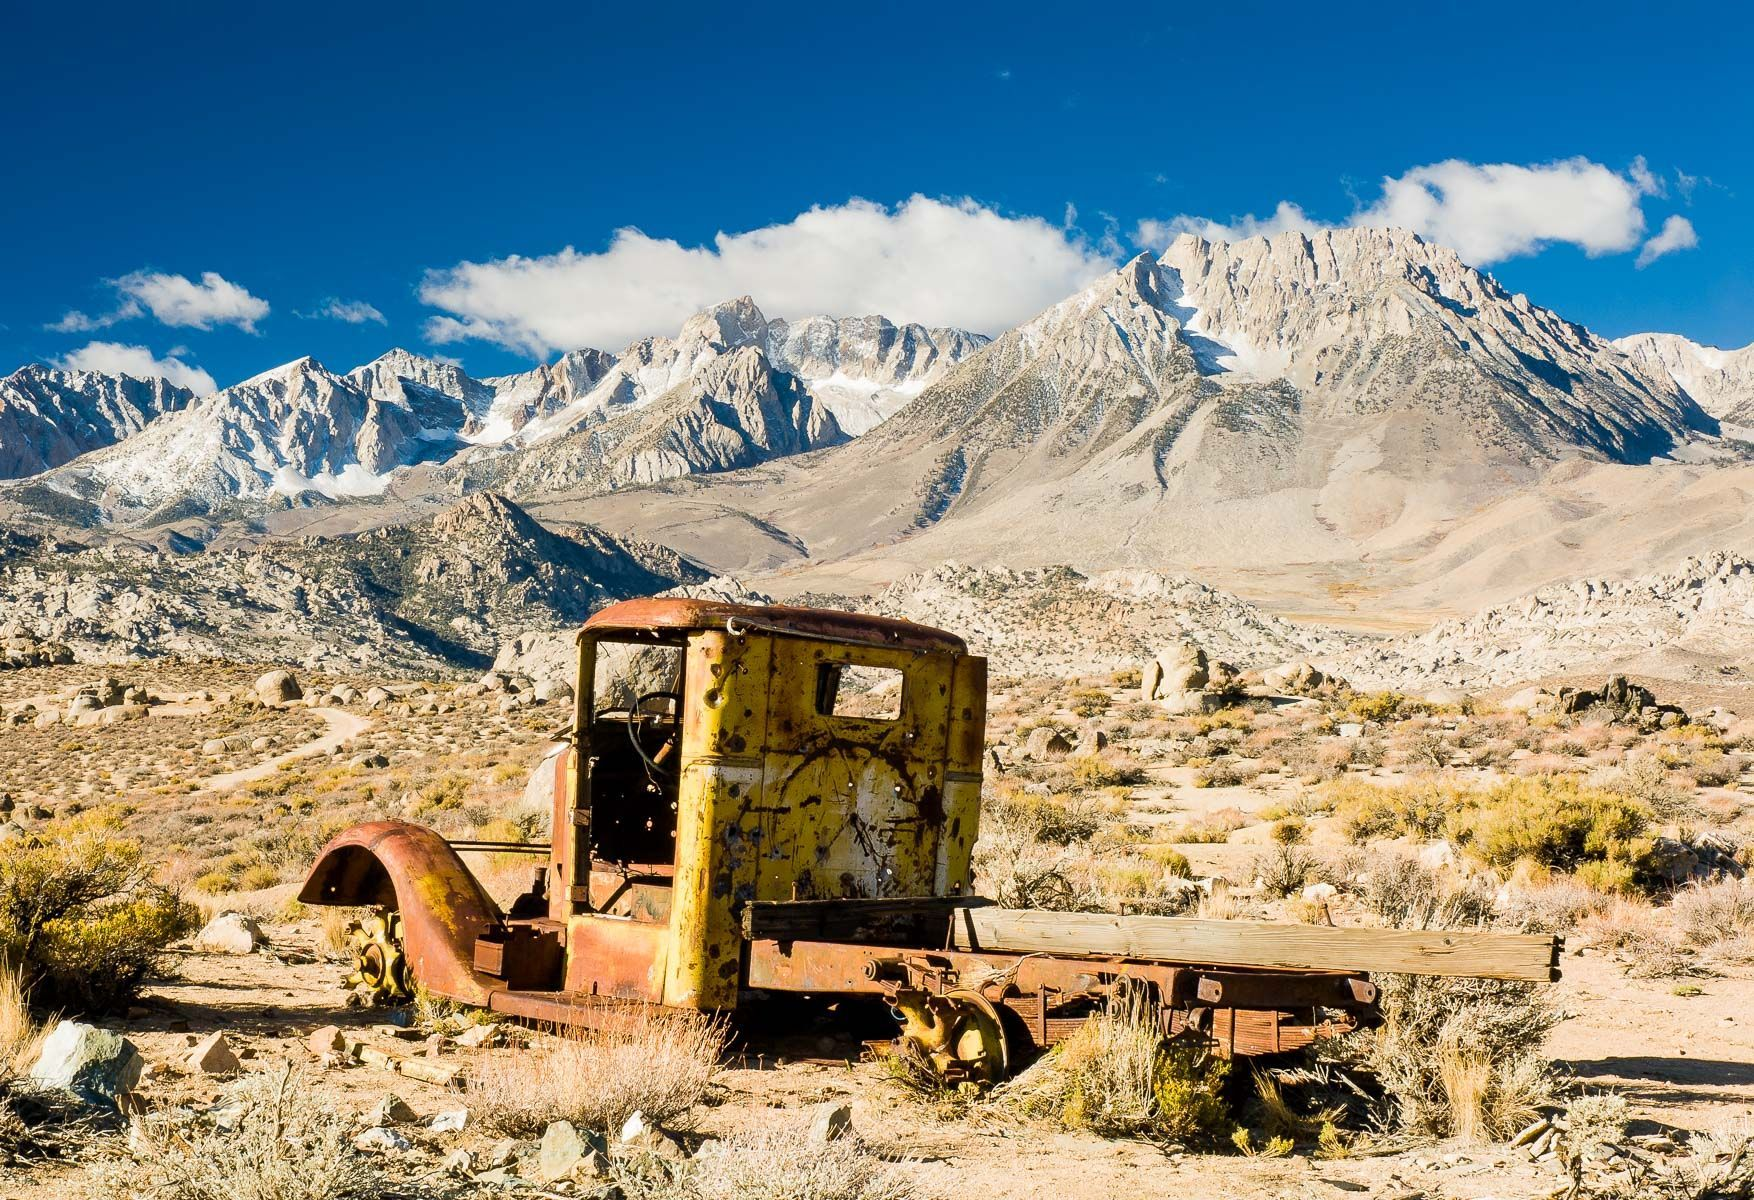 Abandoned Mining Truck in front of the Eastern Sierras